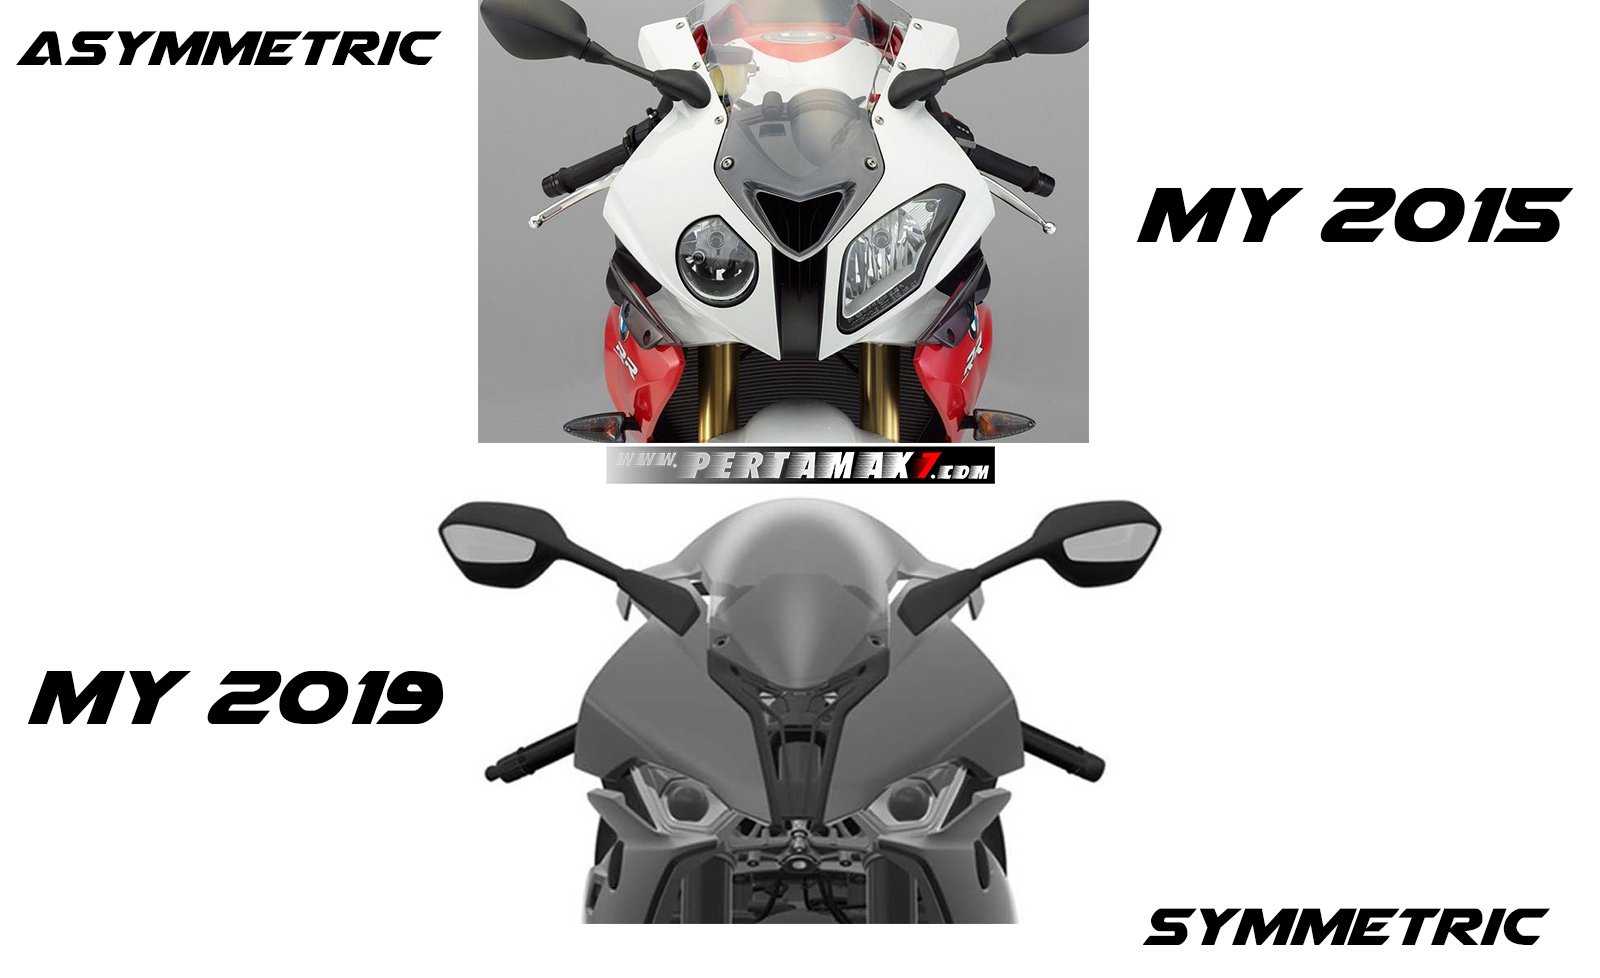 Headlamp BMW S1000RR MY 2015 VS 2019